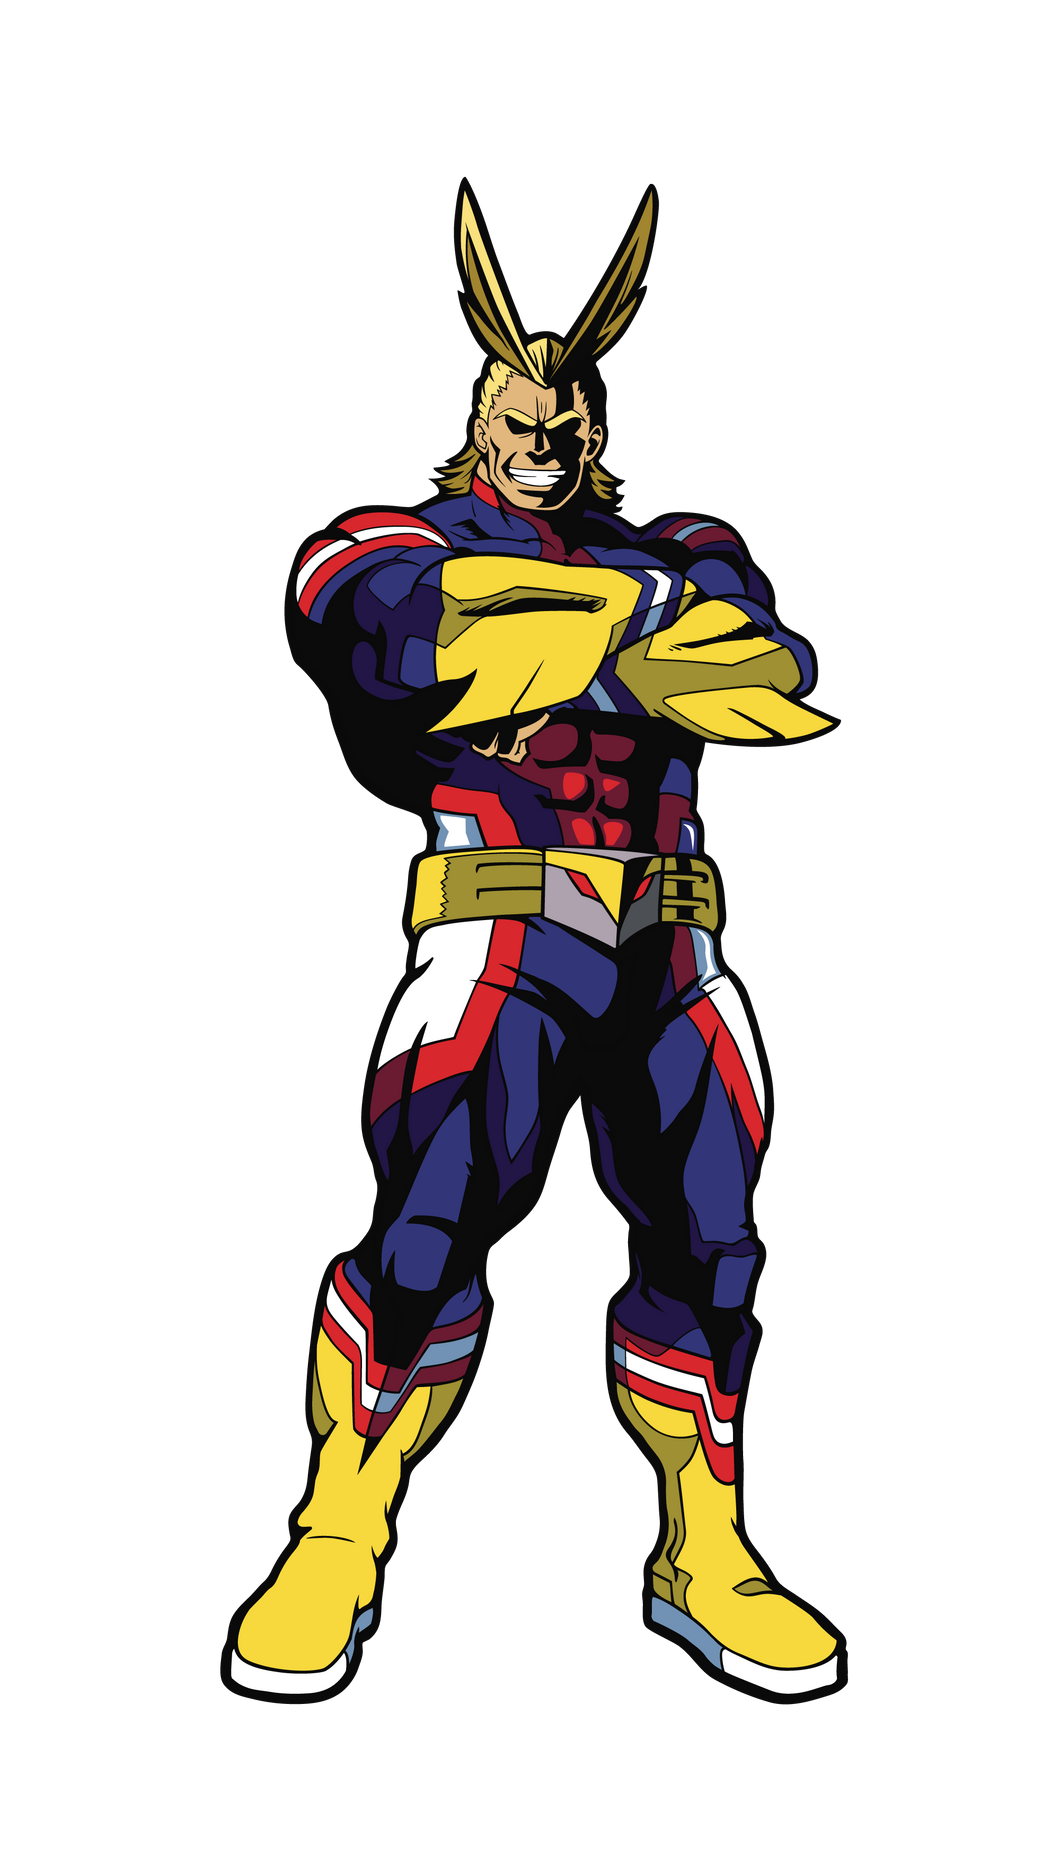 My Hero Academia: All Might #136 FiGPiN